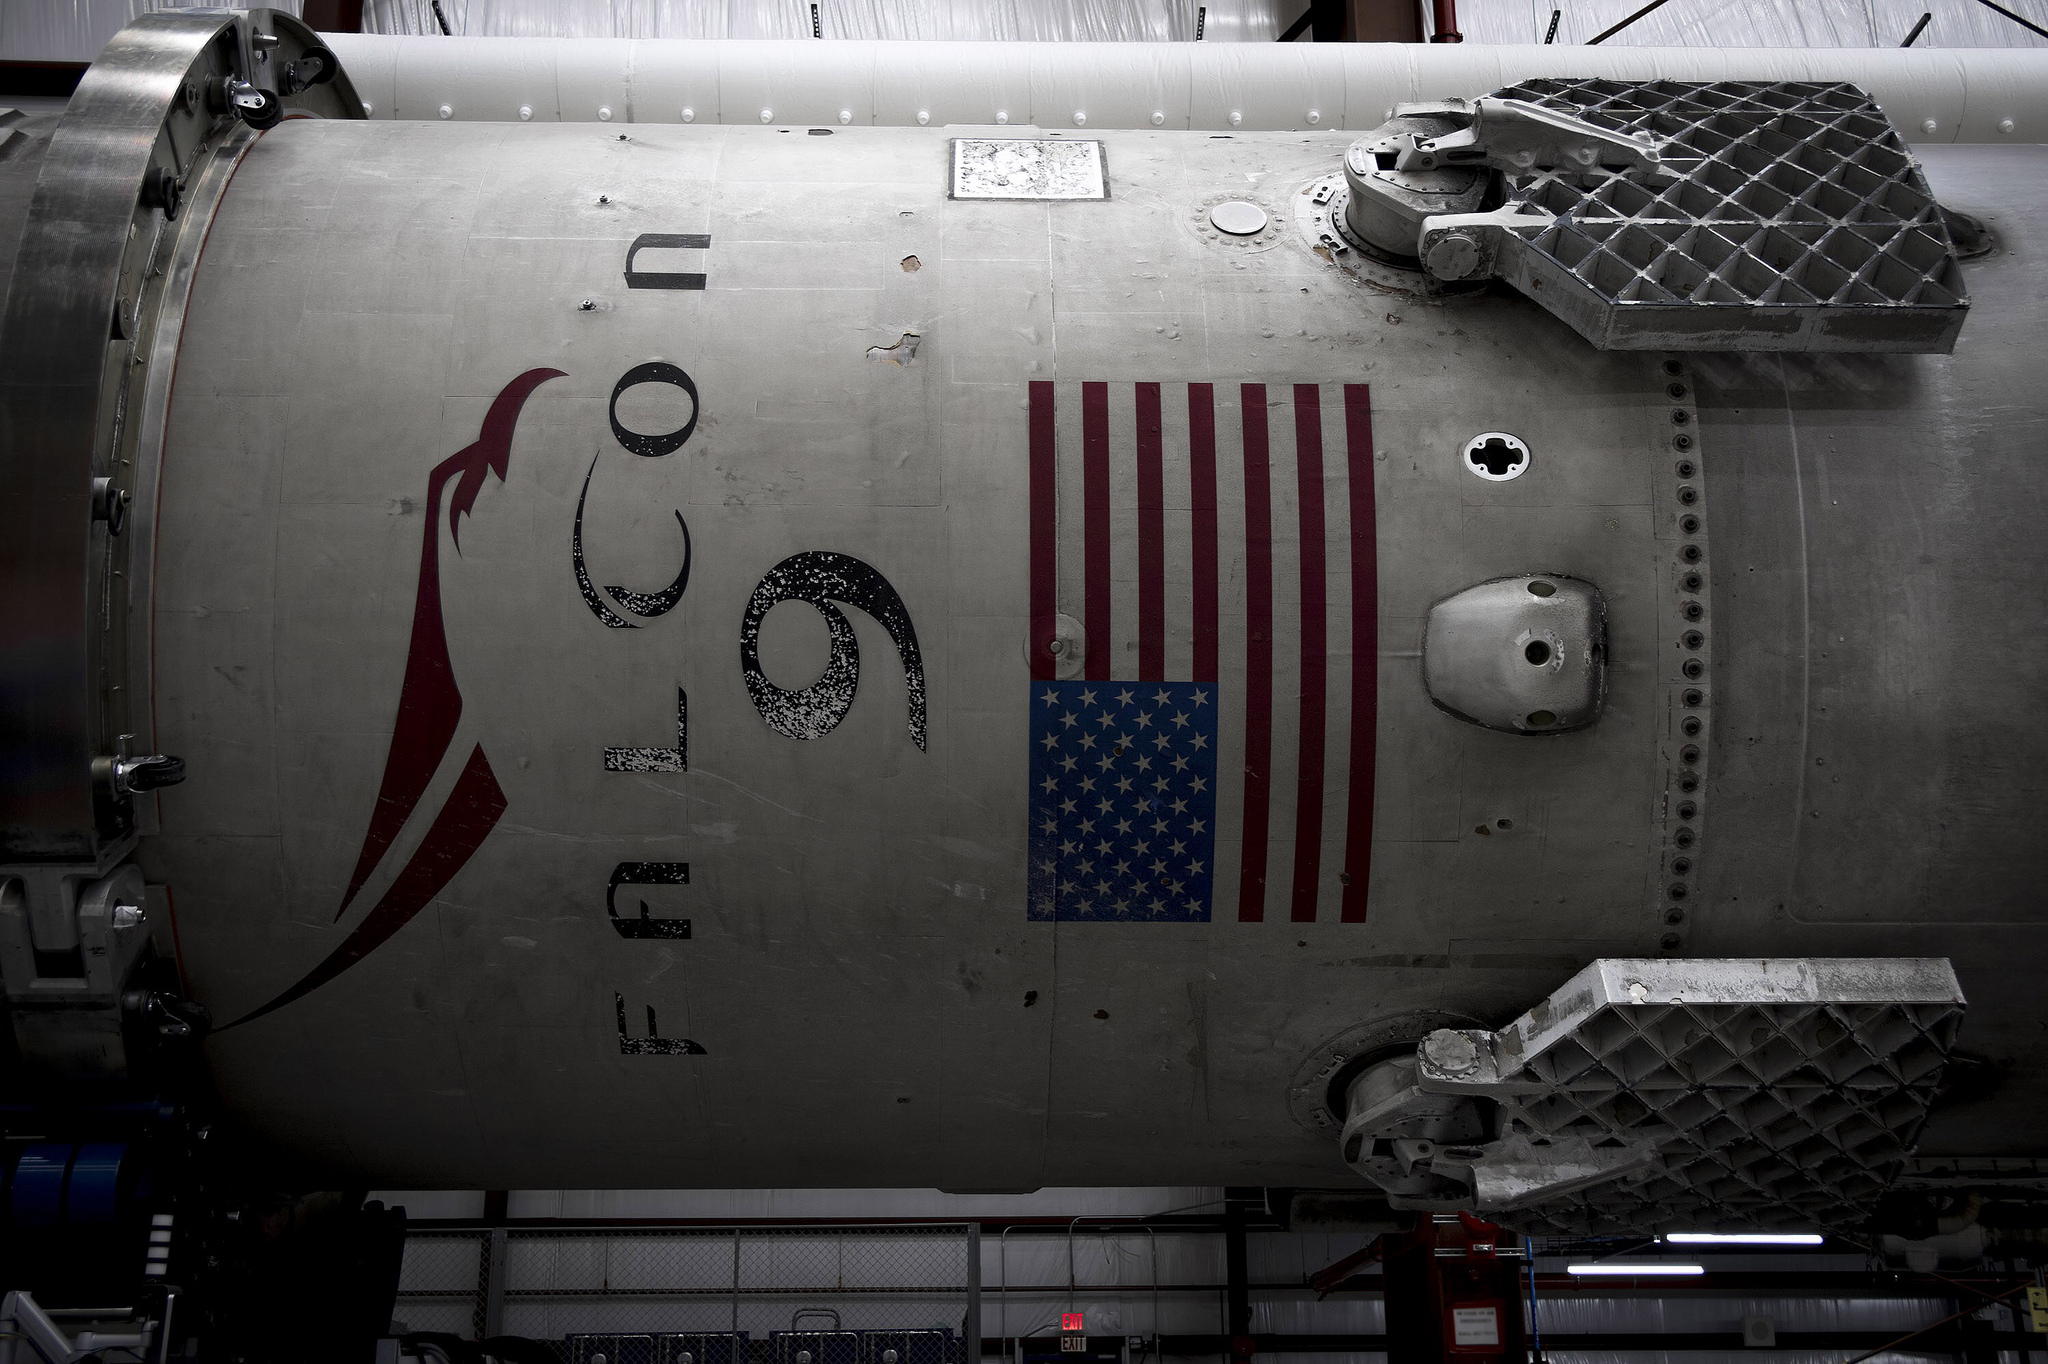 Close-up Of The First Stage Of The Falcon 9 Rocket That SpaceX Landed During An Orbital Launch On Dec. 21, 2015. Credit: SpaceX